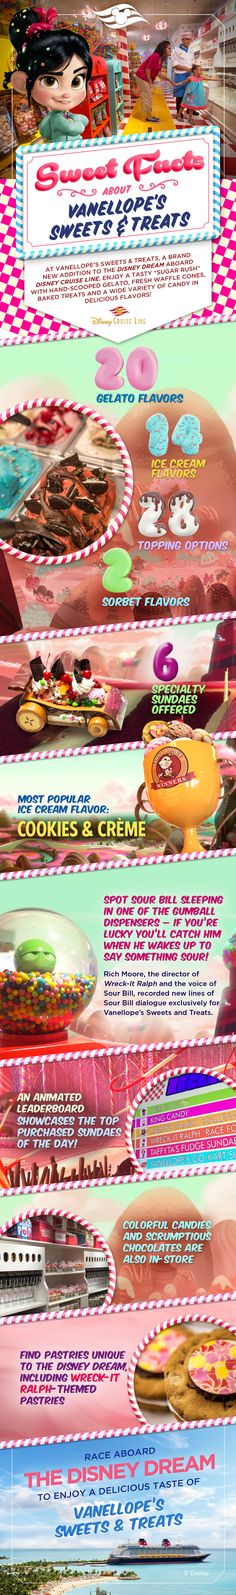 """Race on down to this decadent dessert shop inspired by the super-sweet arcade game from Disney's Wreck-It Ralph. Enjoy a """"Sugar Rush"""" with hand-scooped gelato, fresh waffle cones, baked treats and candy in a wide variety of delicious flavors."""